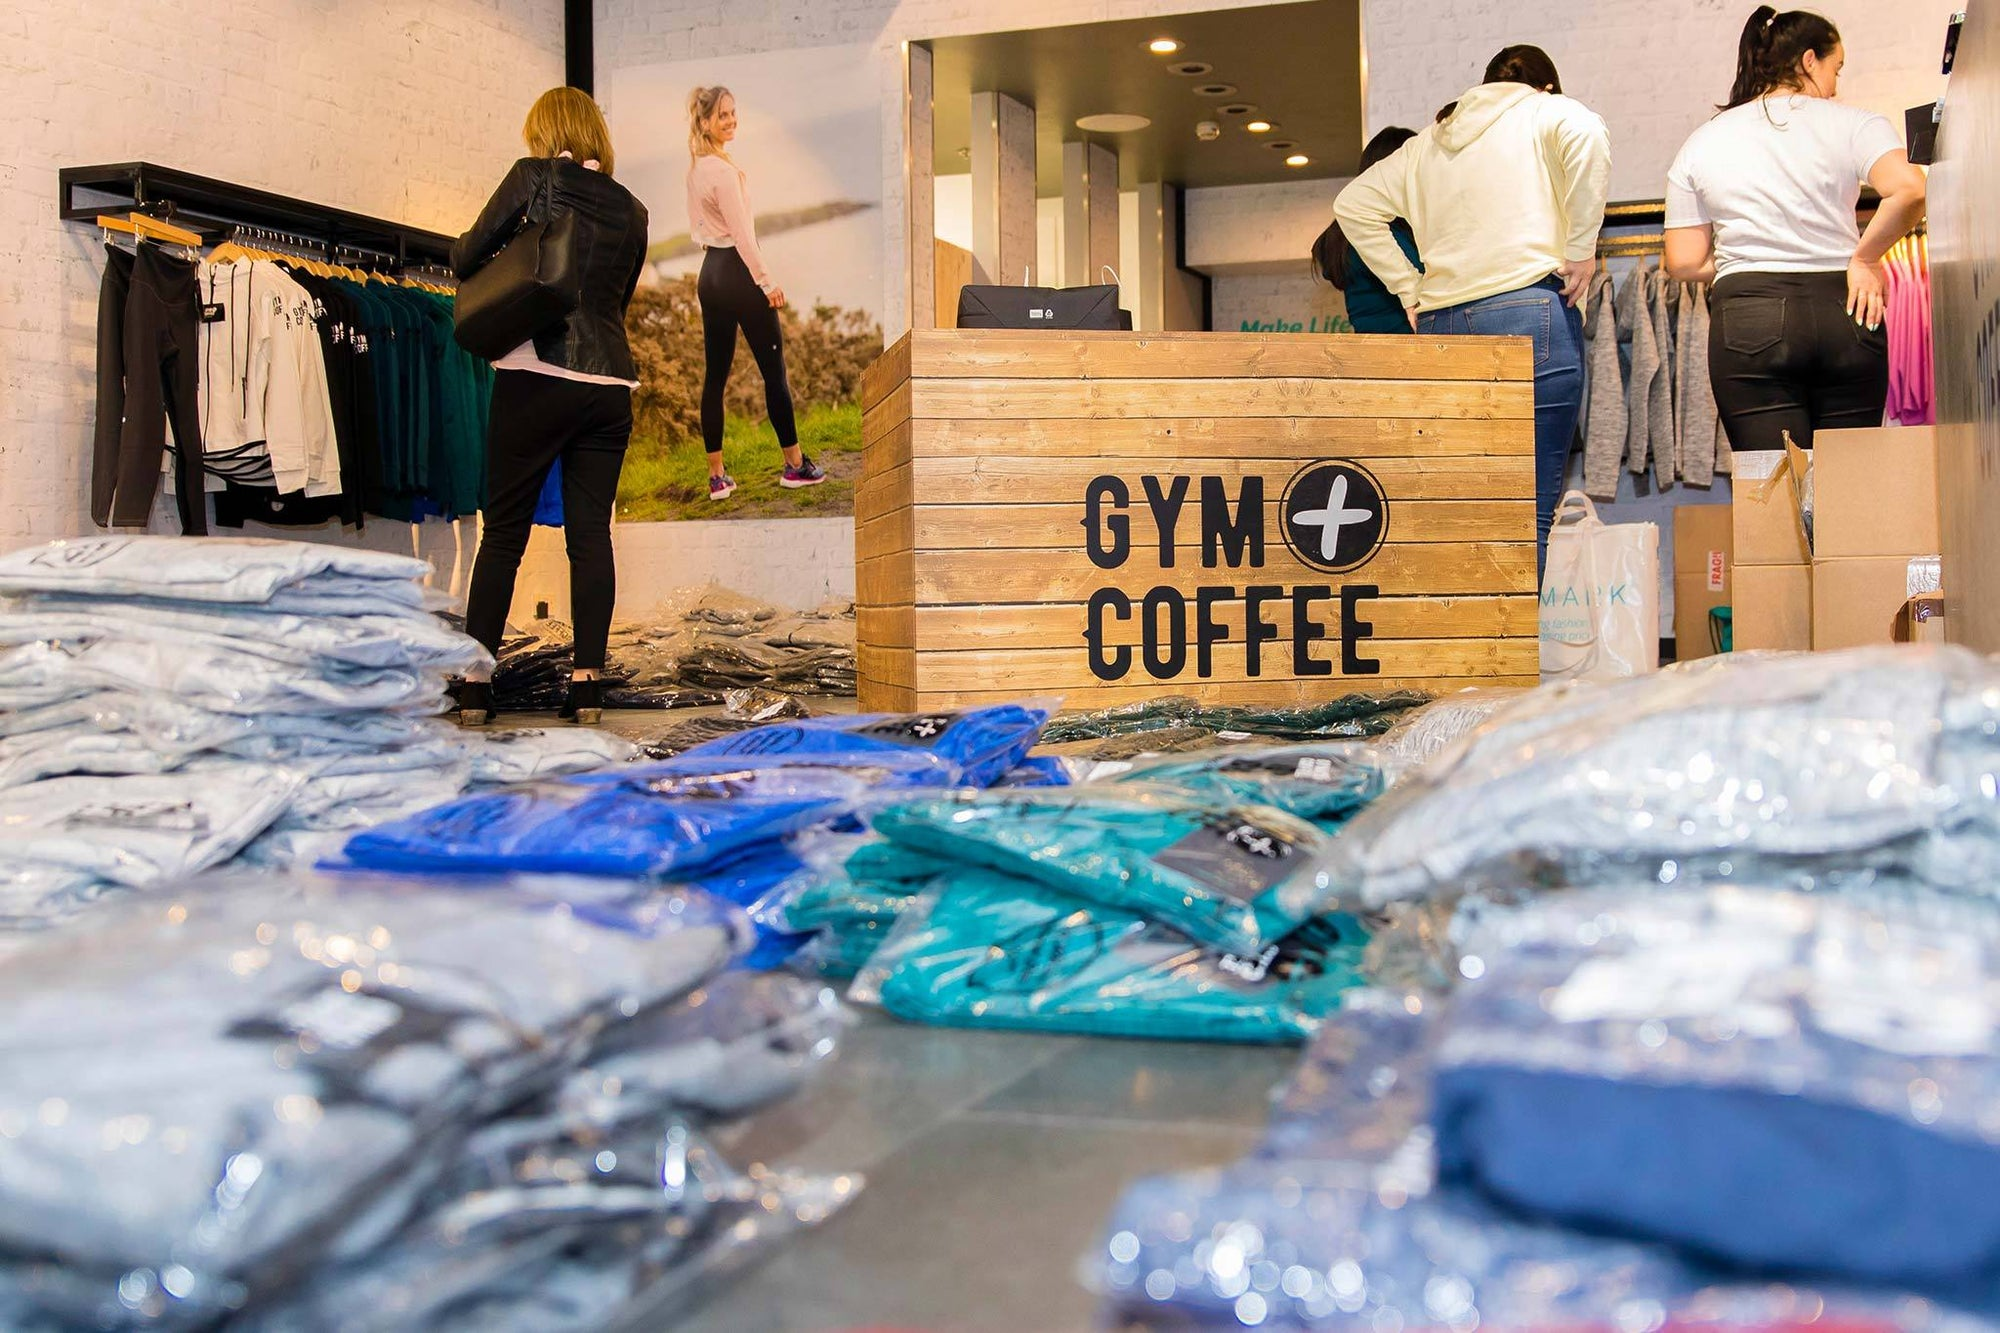 Gym+Coffee Store Opening Countdown!!